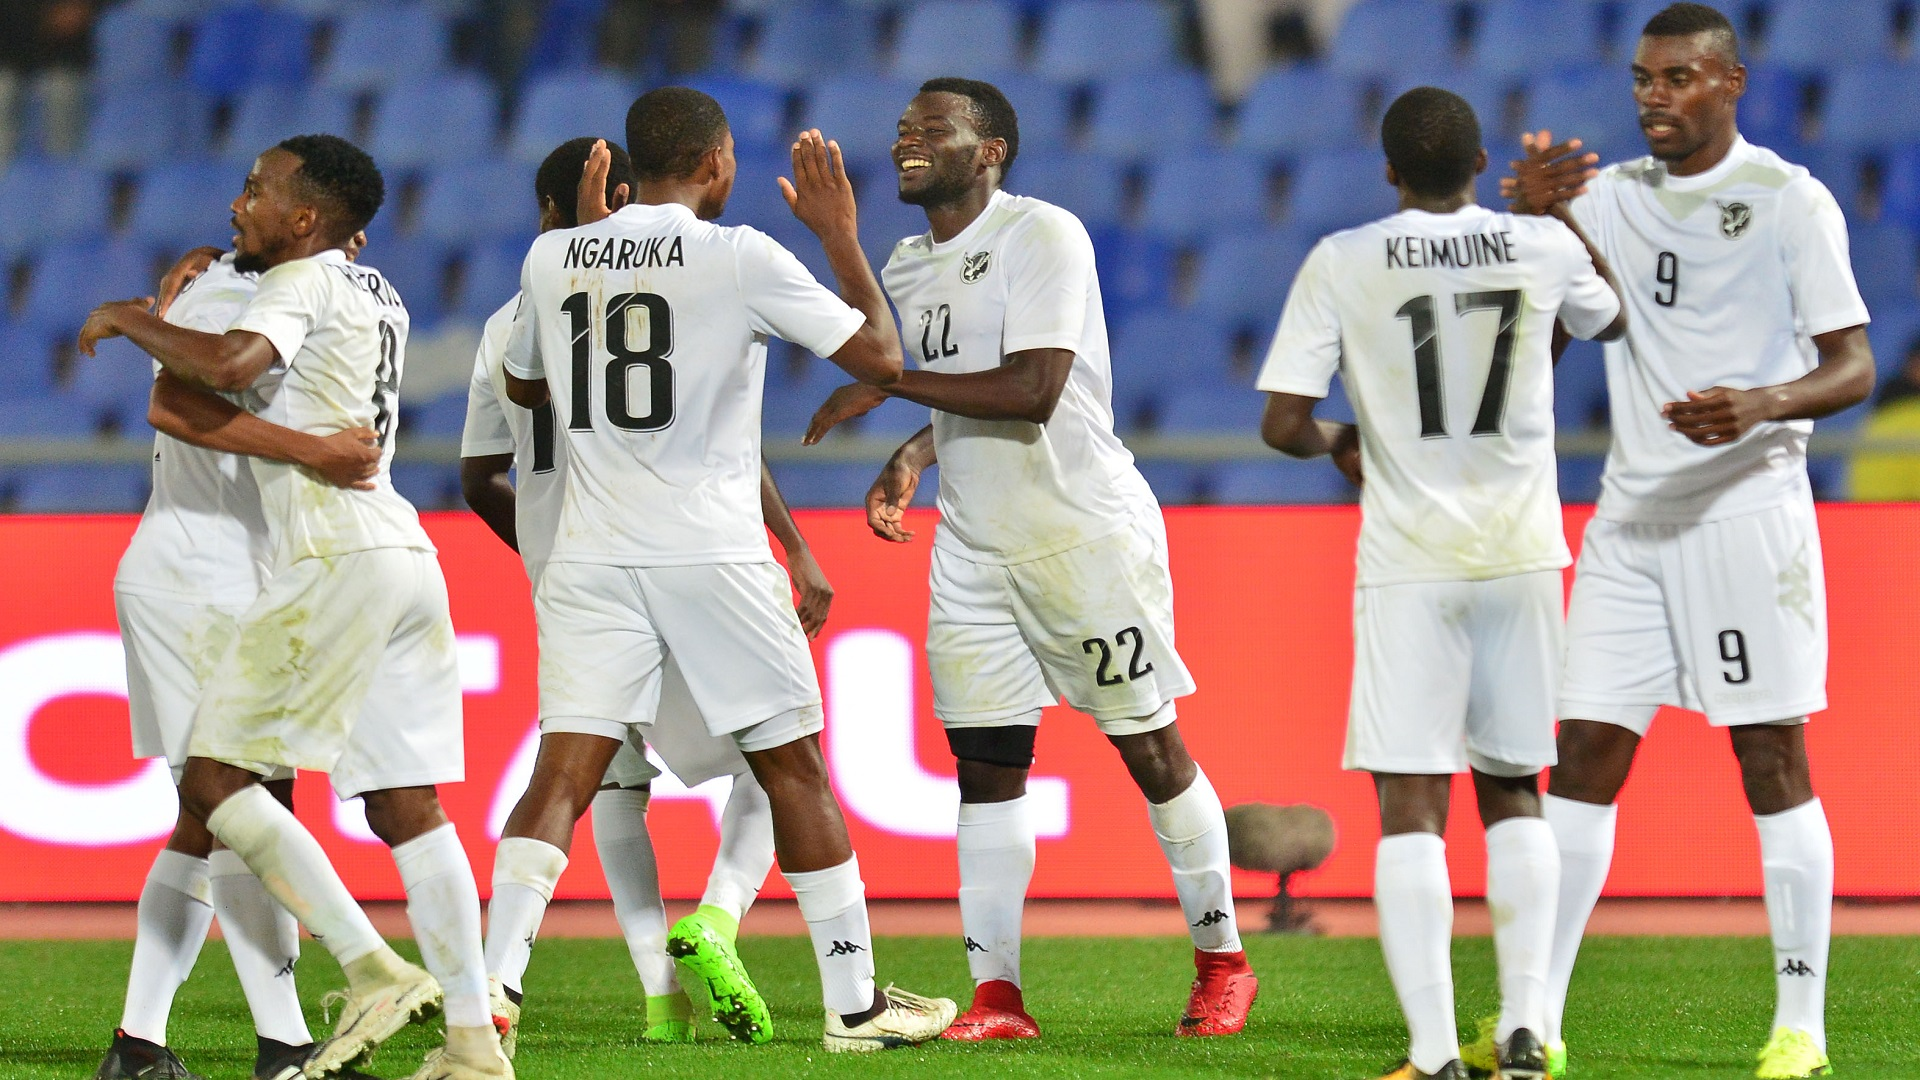 Namibia celebrate a goal during CHAN 2018